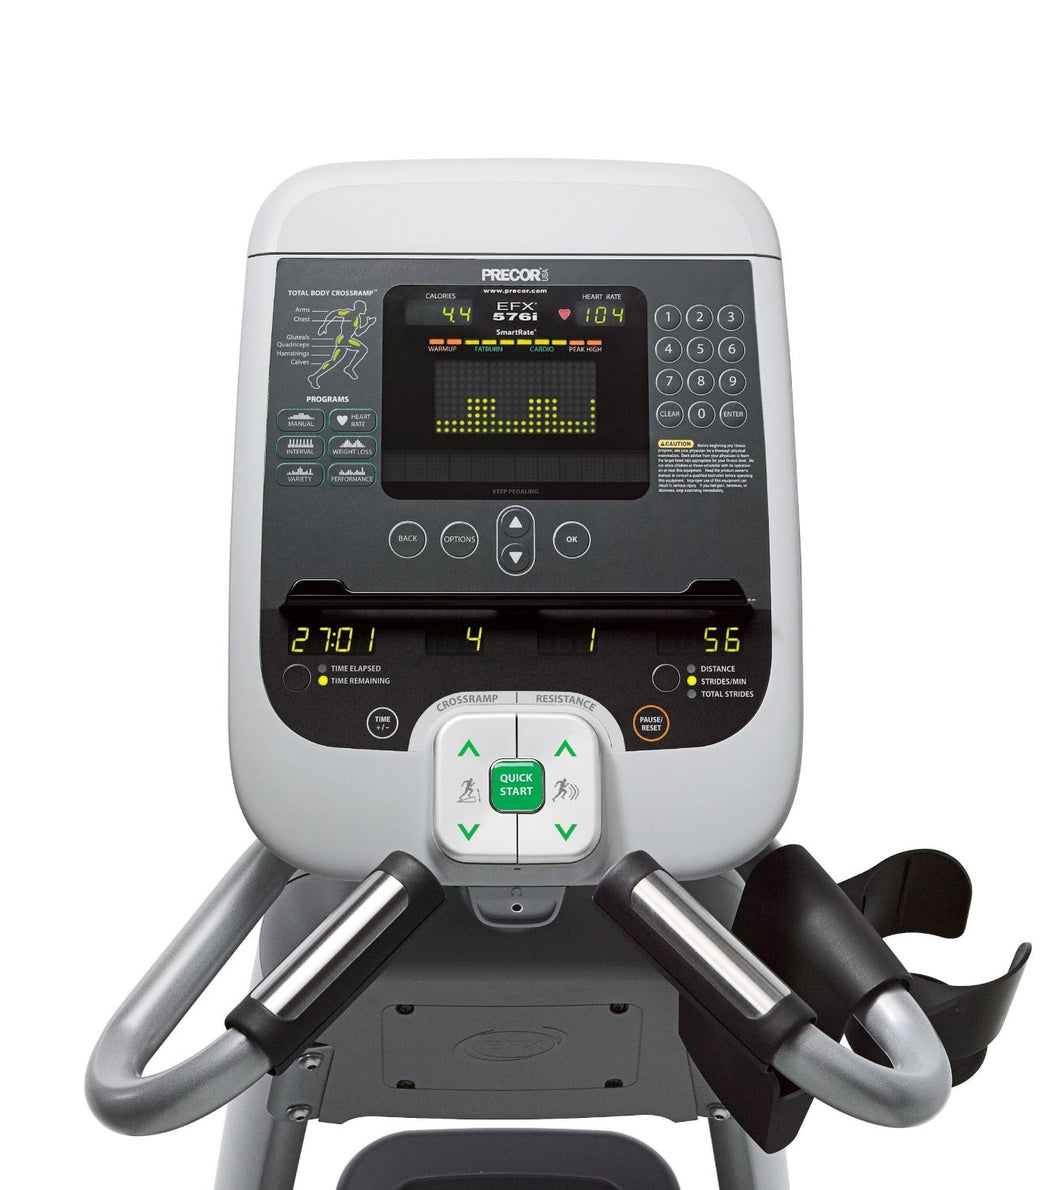 Precor EFX 576i Experience Series Cross Trainer (Remanufactured)